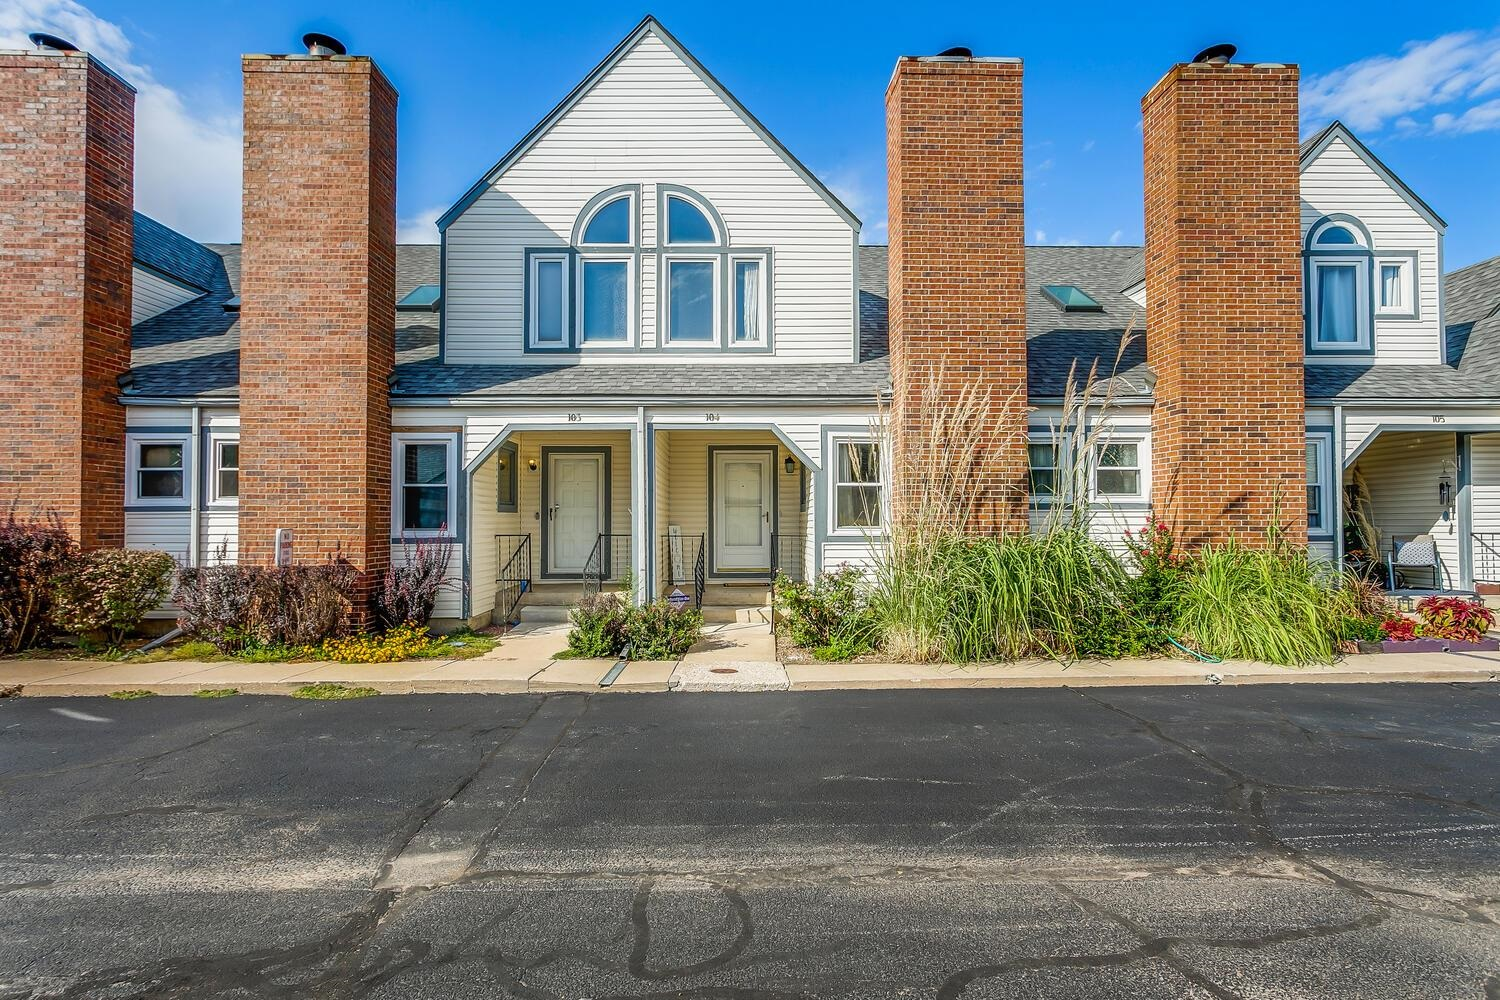 Welcome to this spacious Townhome that features 3 bedrooms, 1 full baths and 2 half bath, a full fin